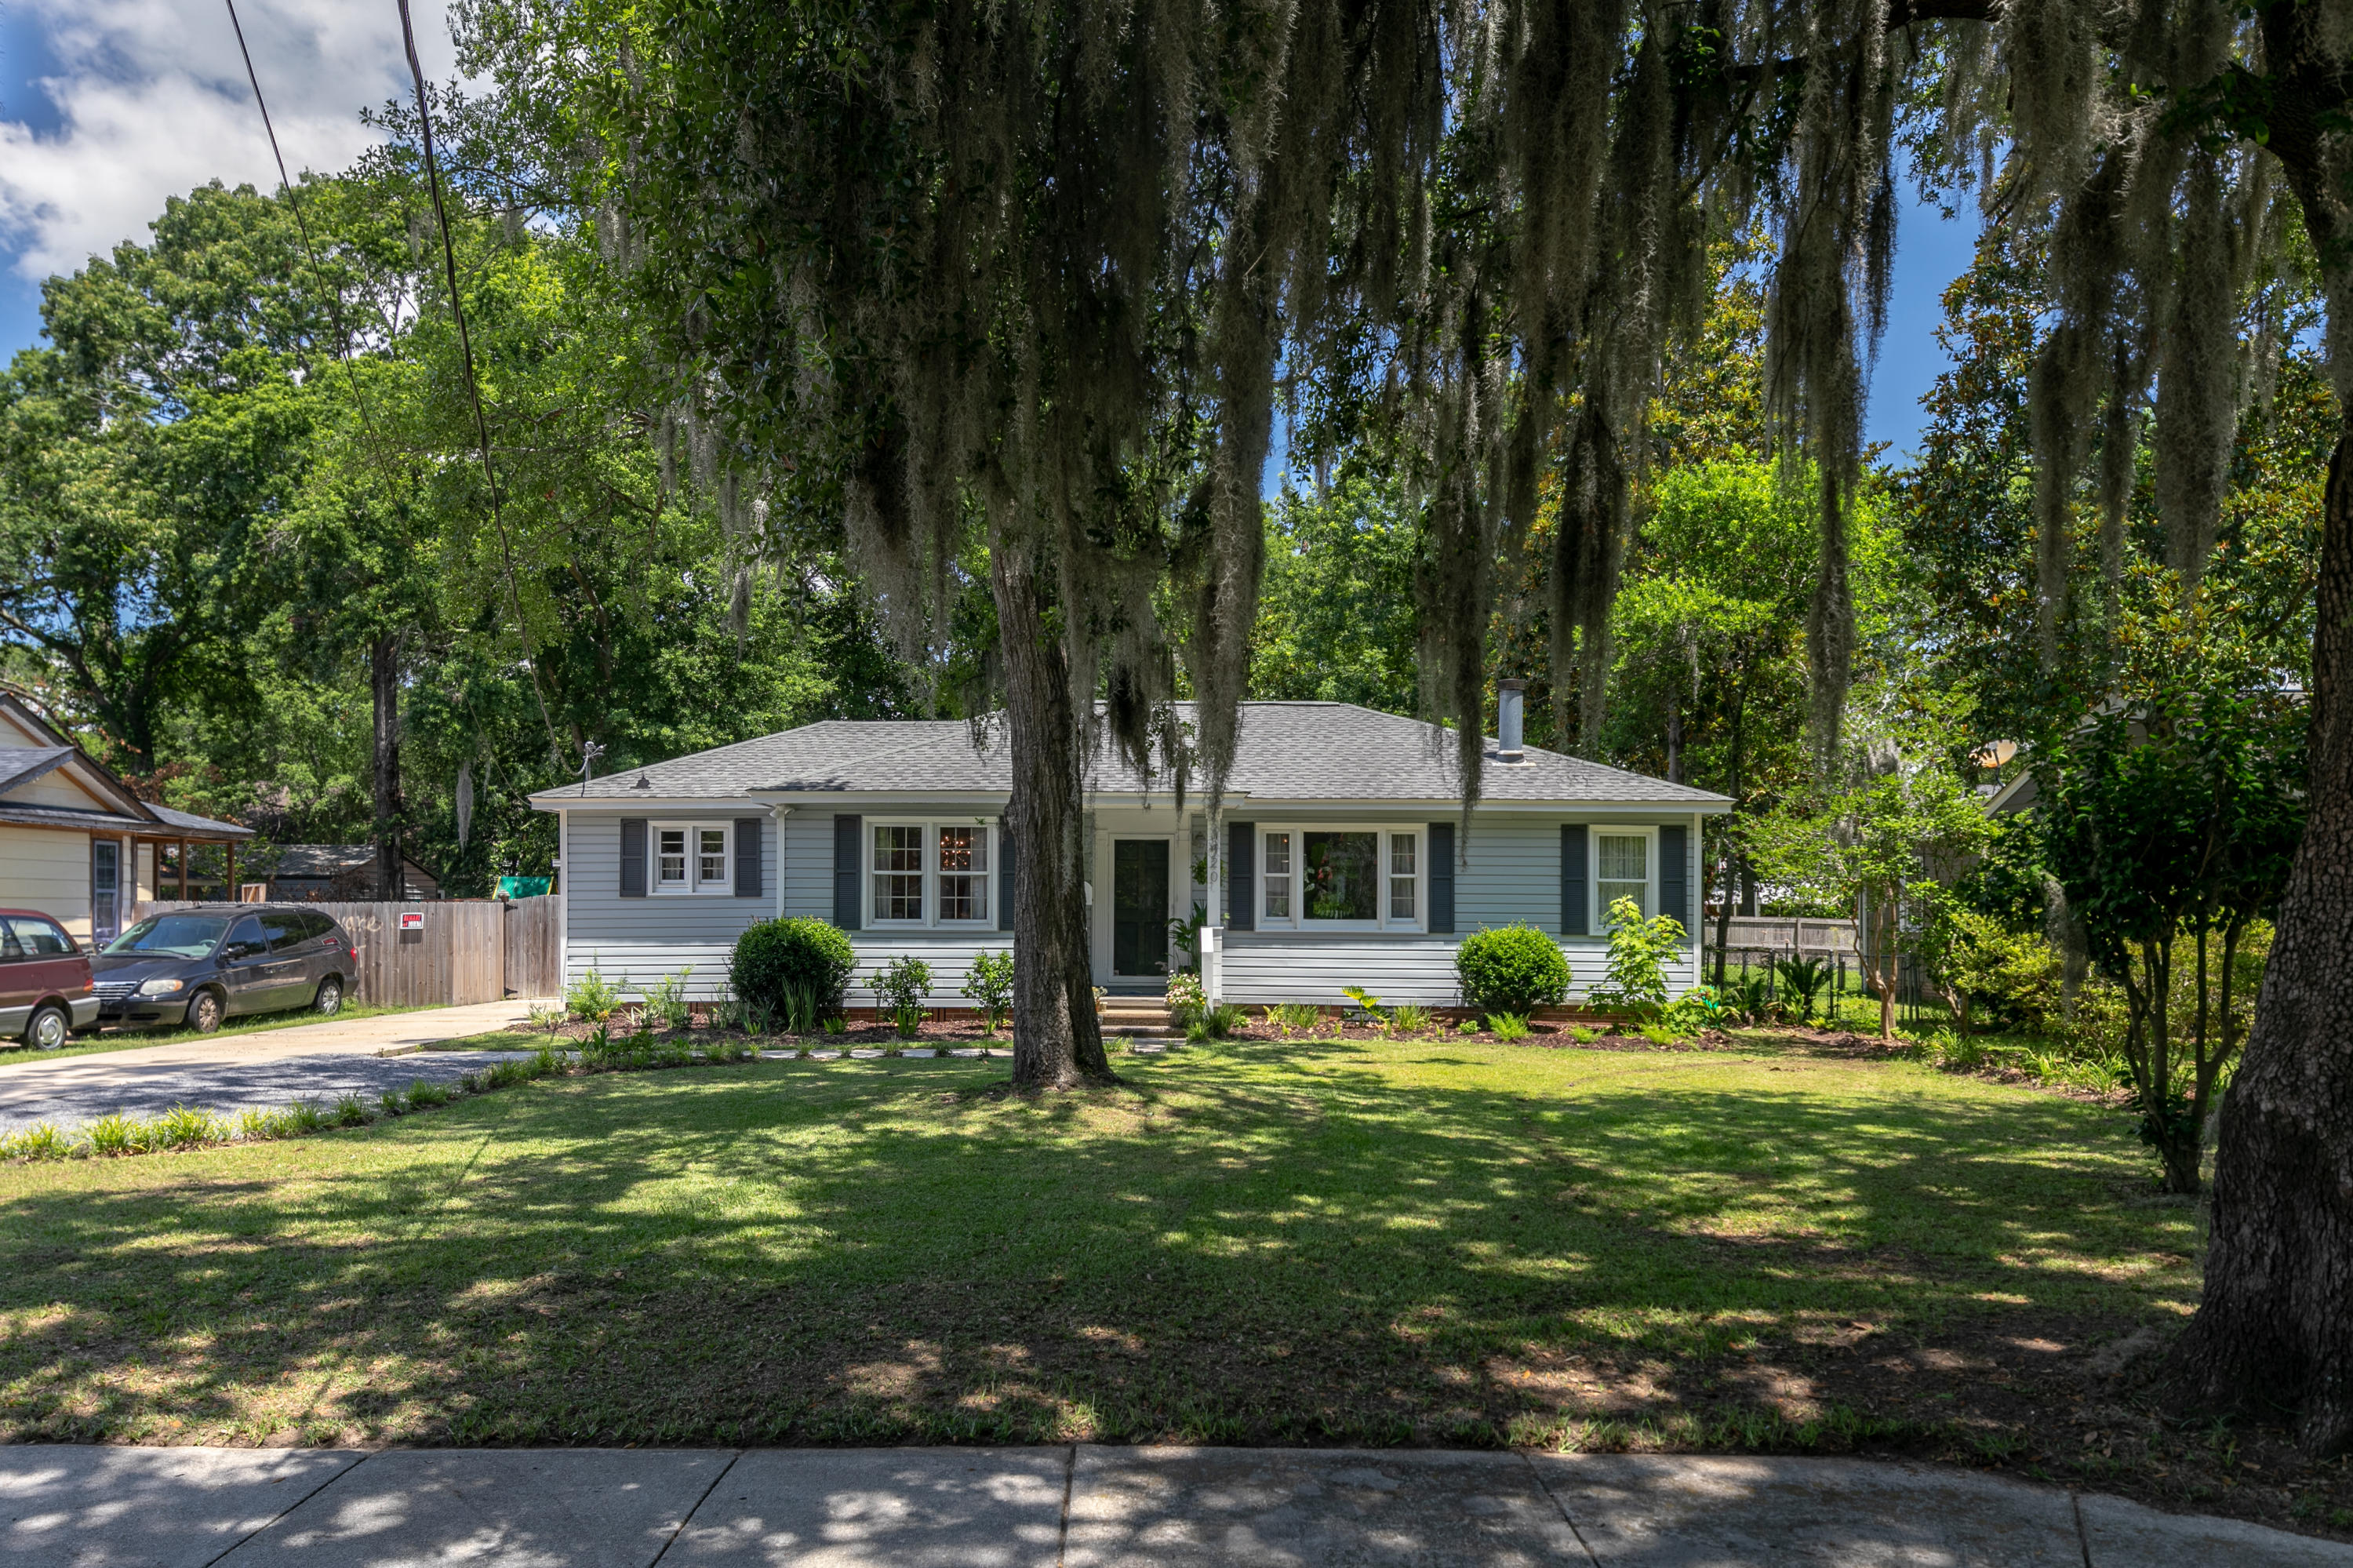 Photo of 1420 Bexley St, North Charleston, SC 29405